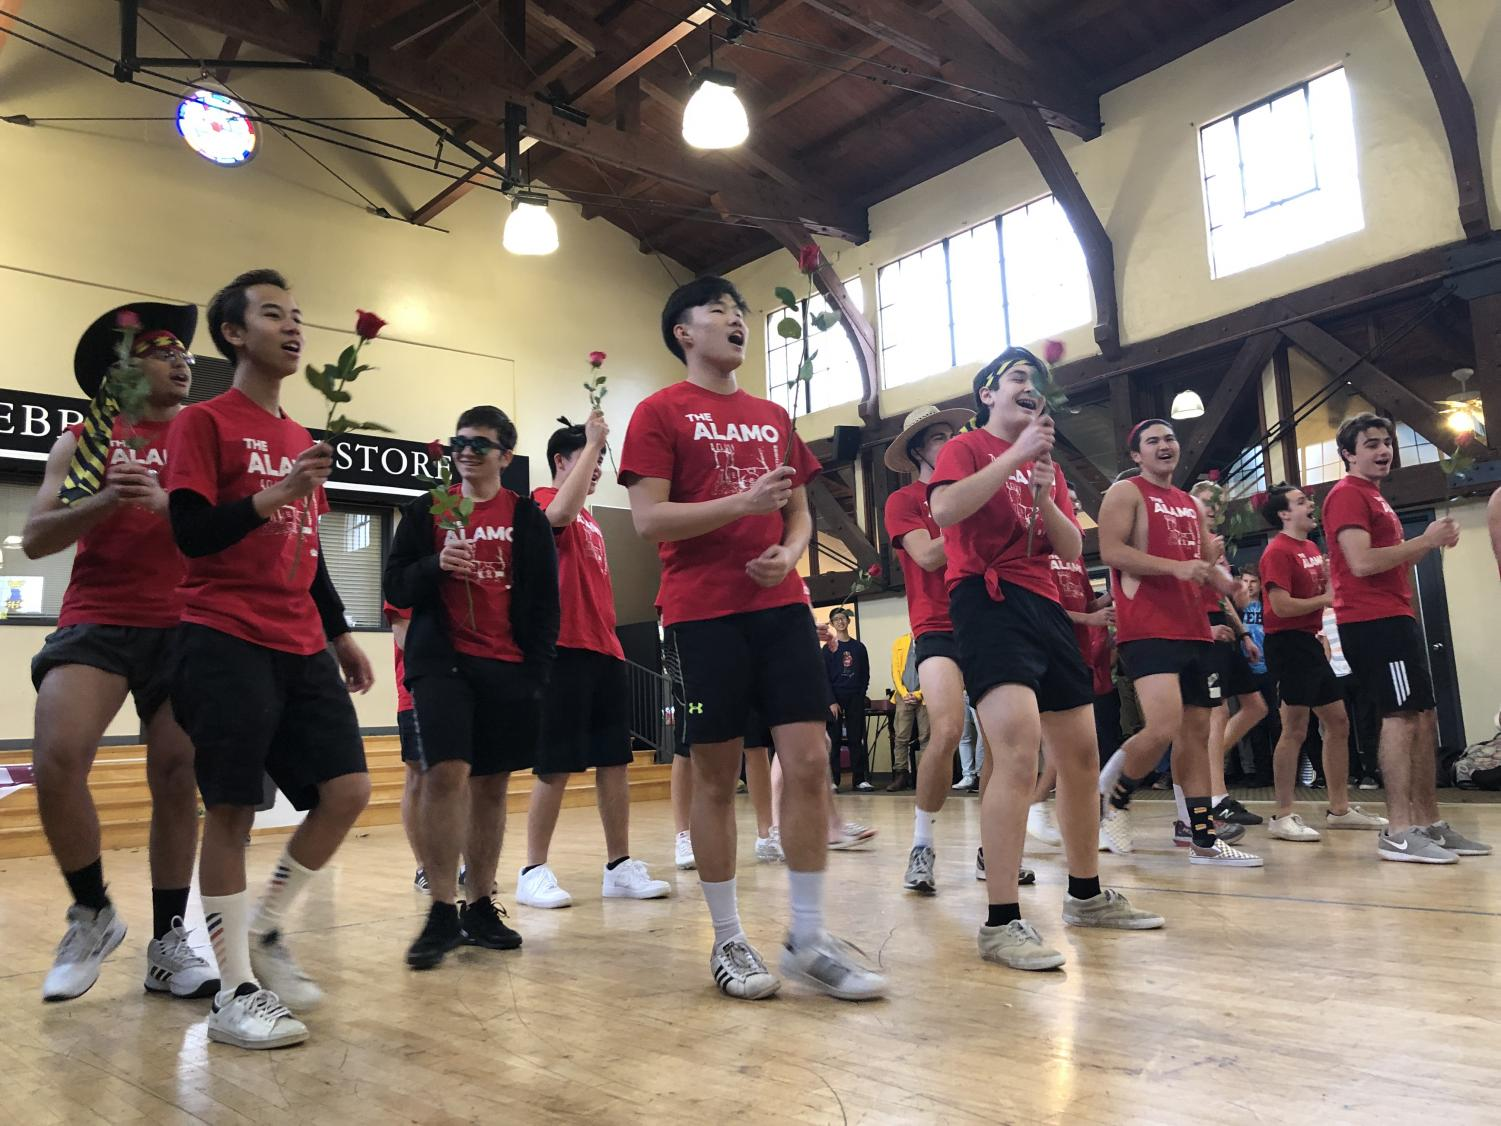 Alamo dorm residents, defending champions of Webb Idol, shows their dance moves in front of students and faculty.